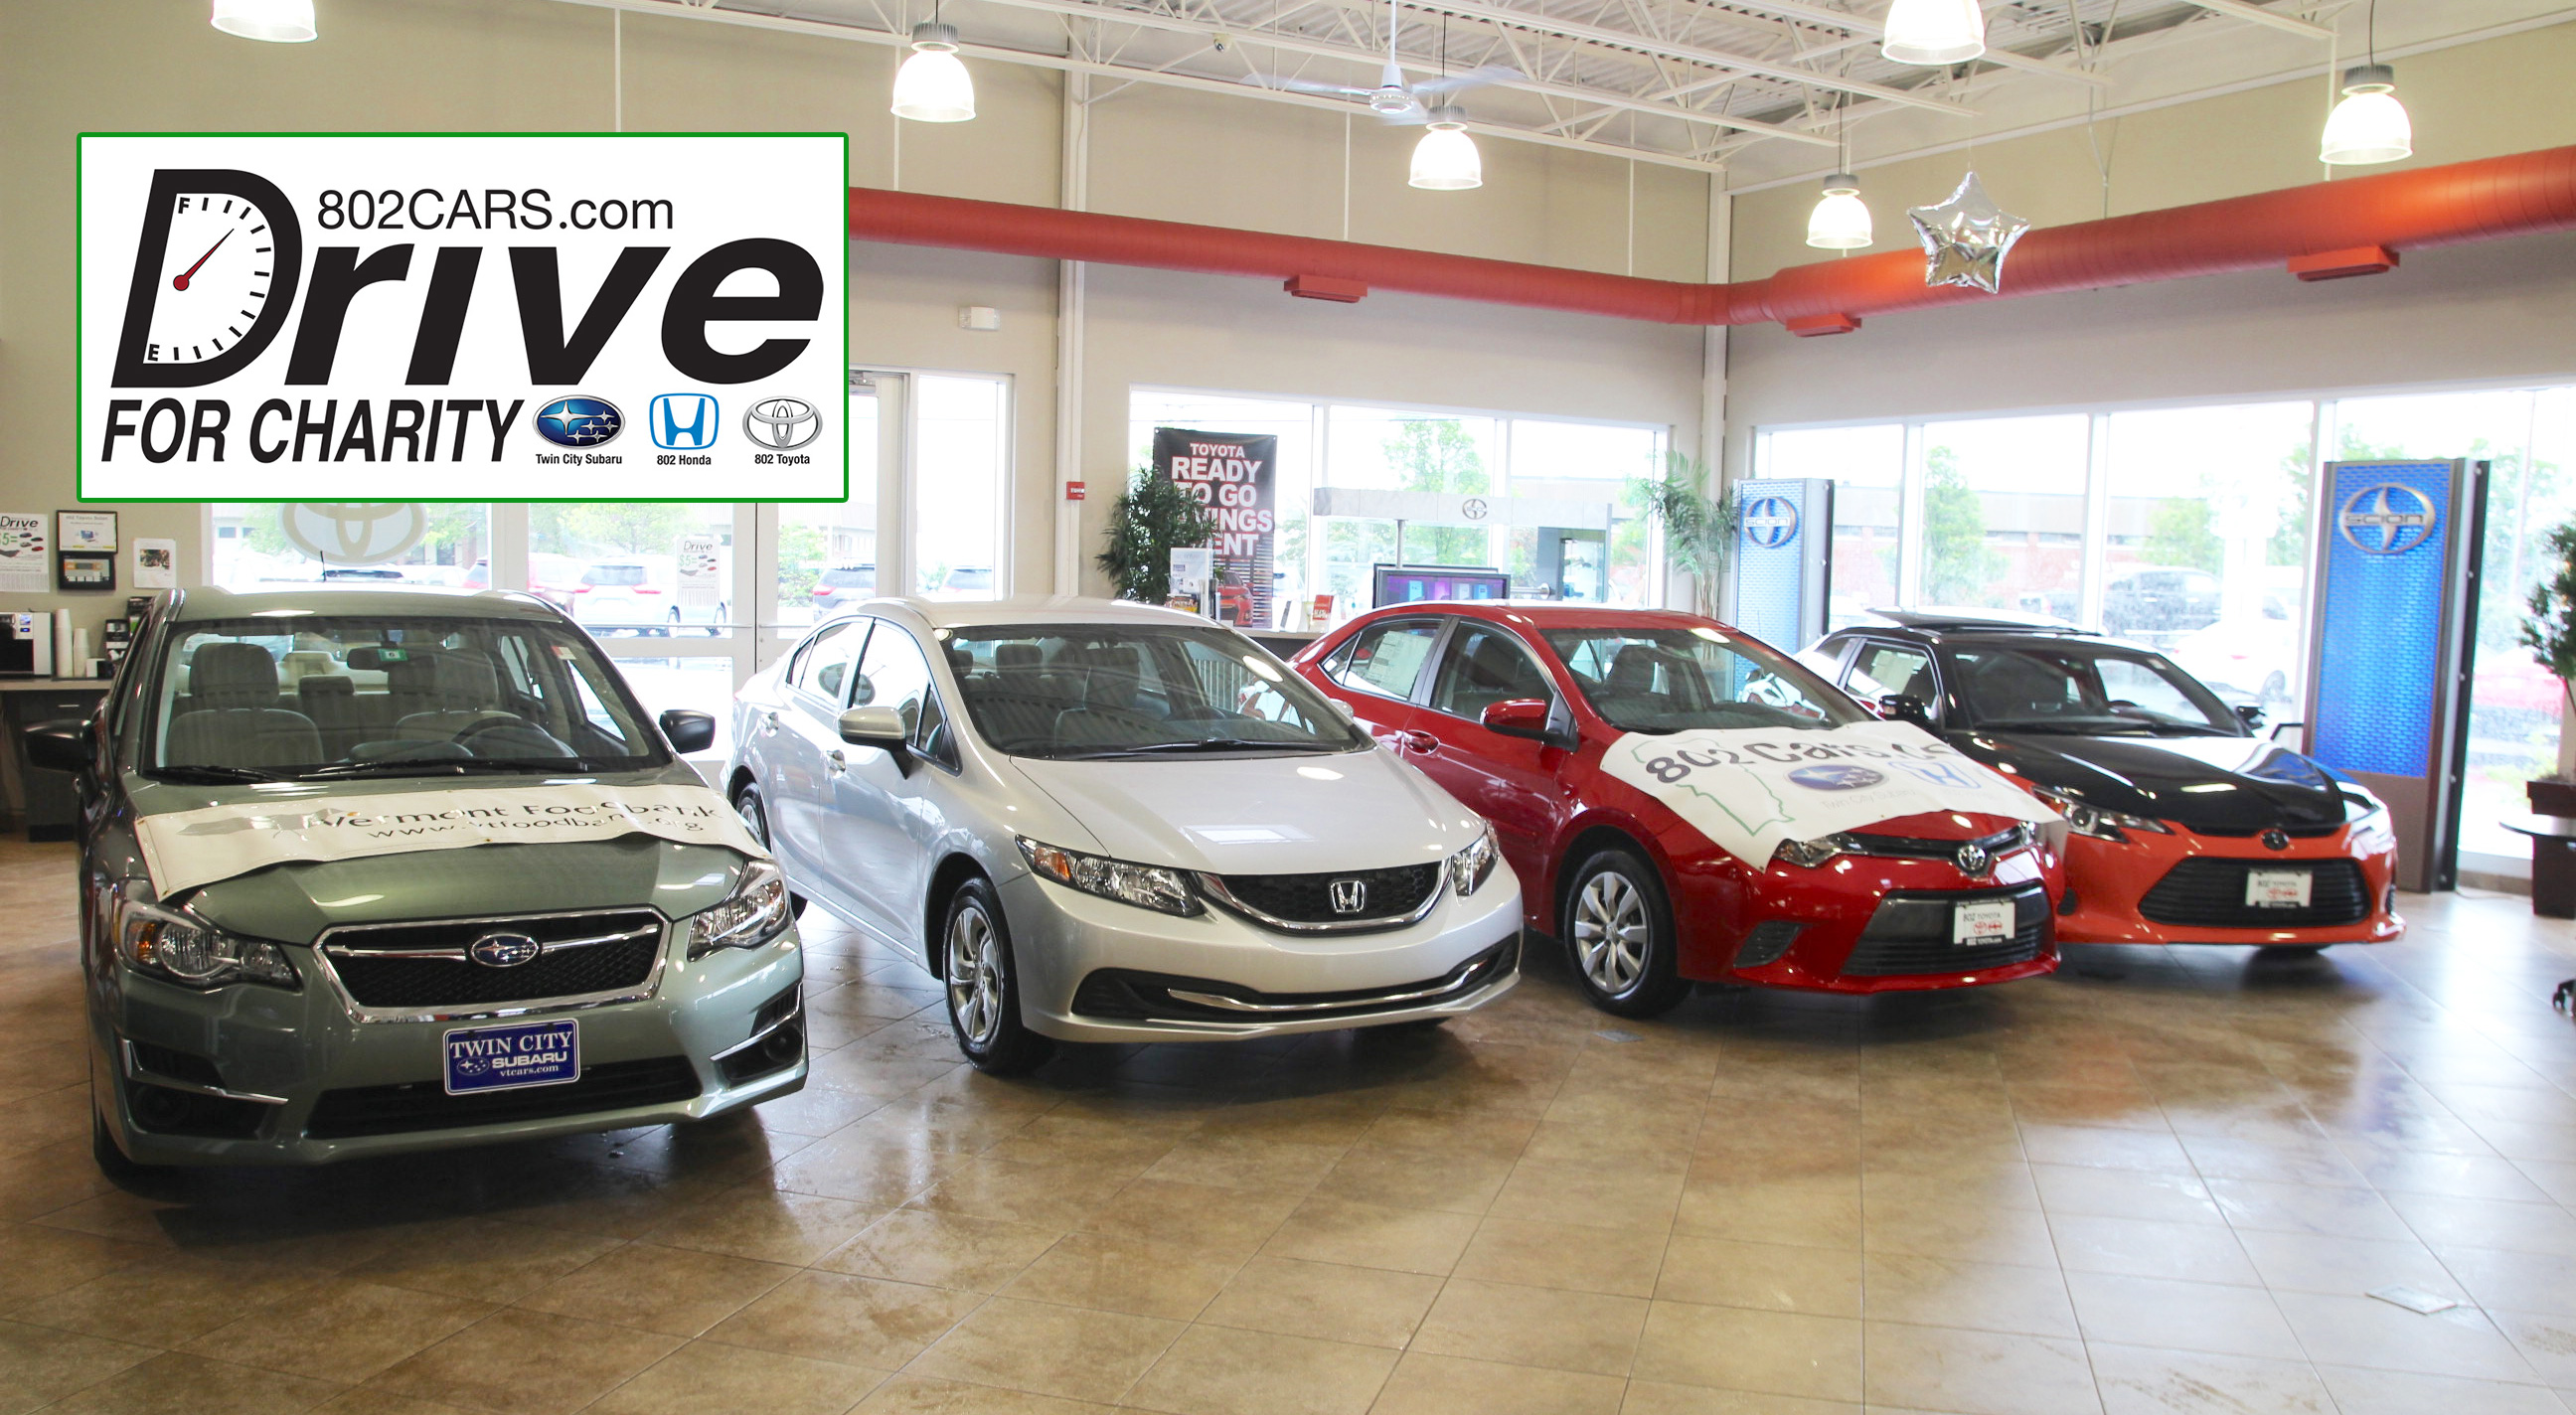 Drive for charity update for Twin cities honda dealers